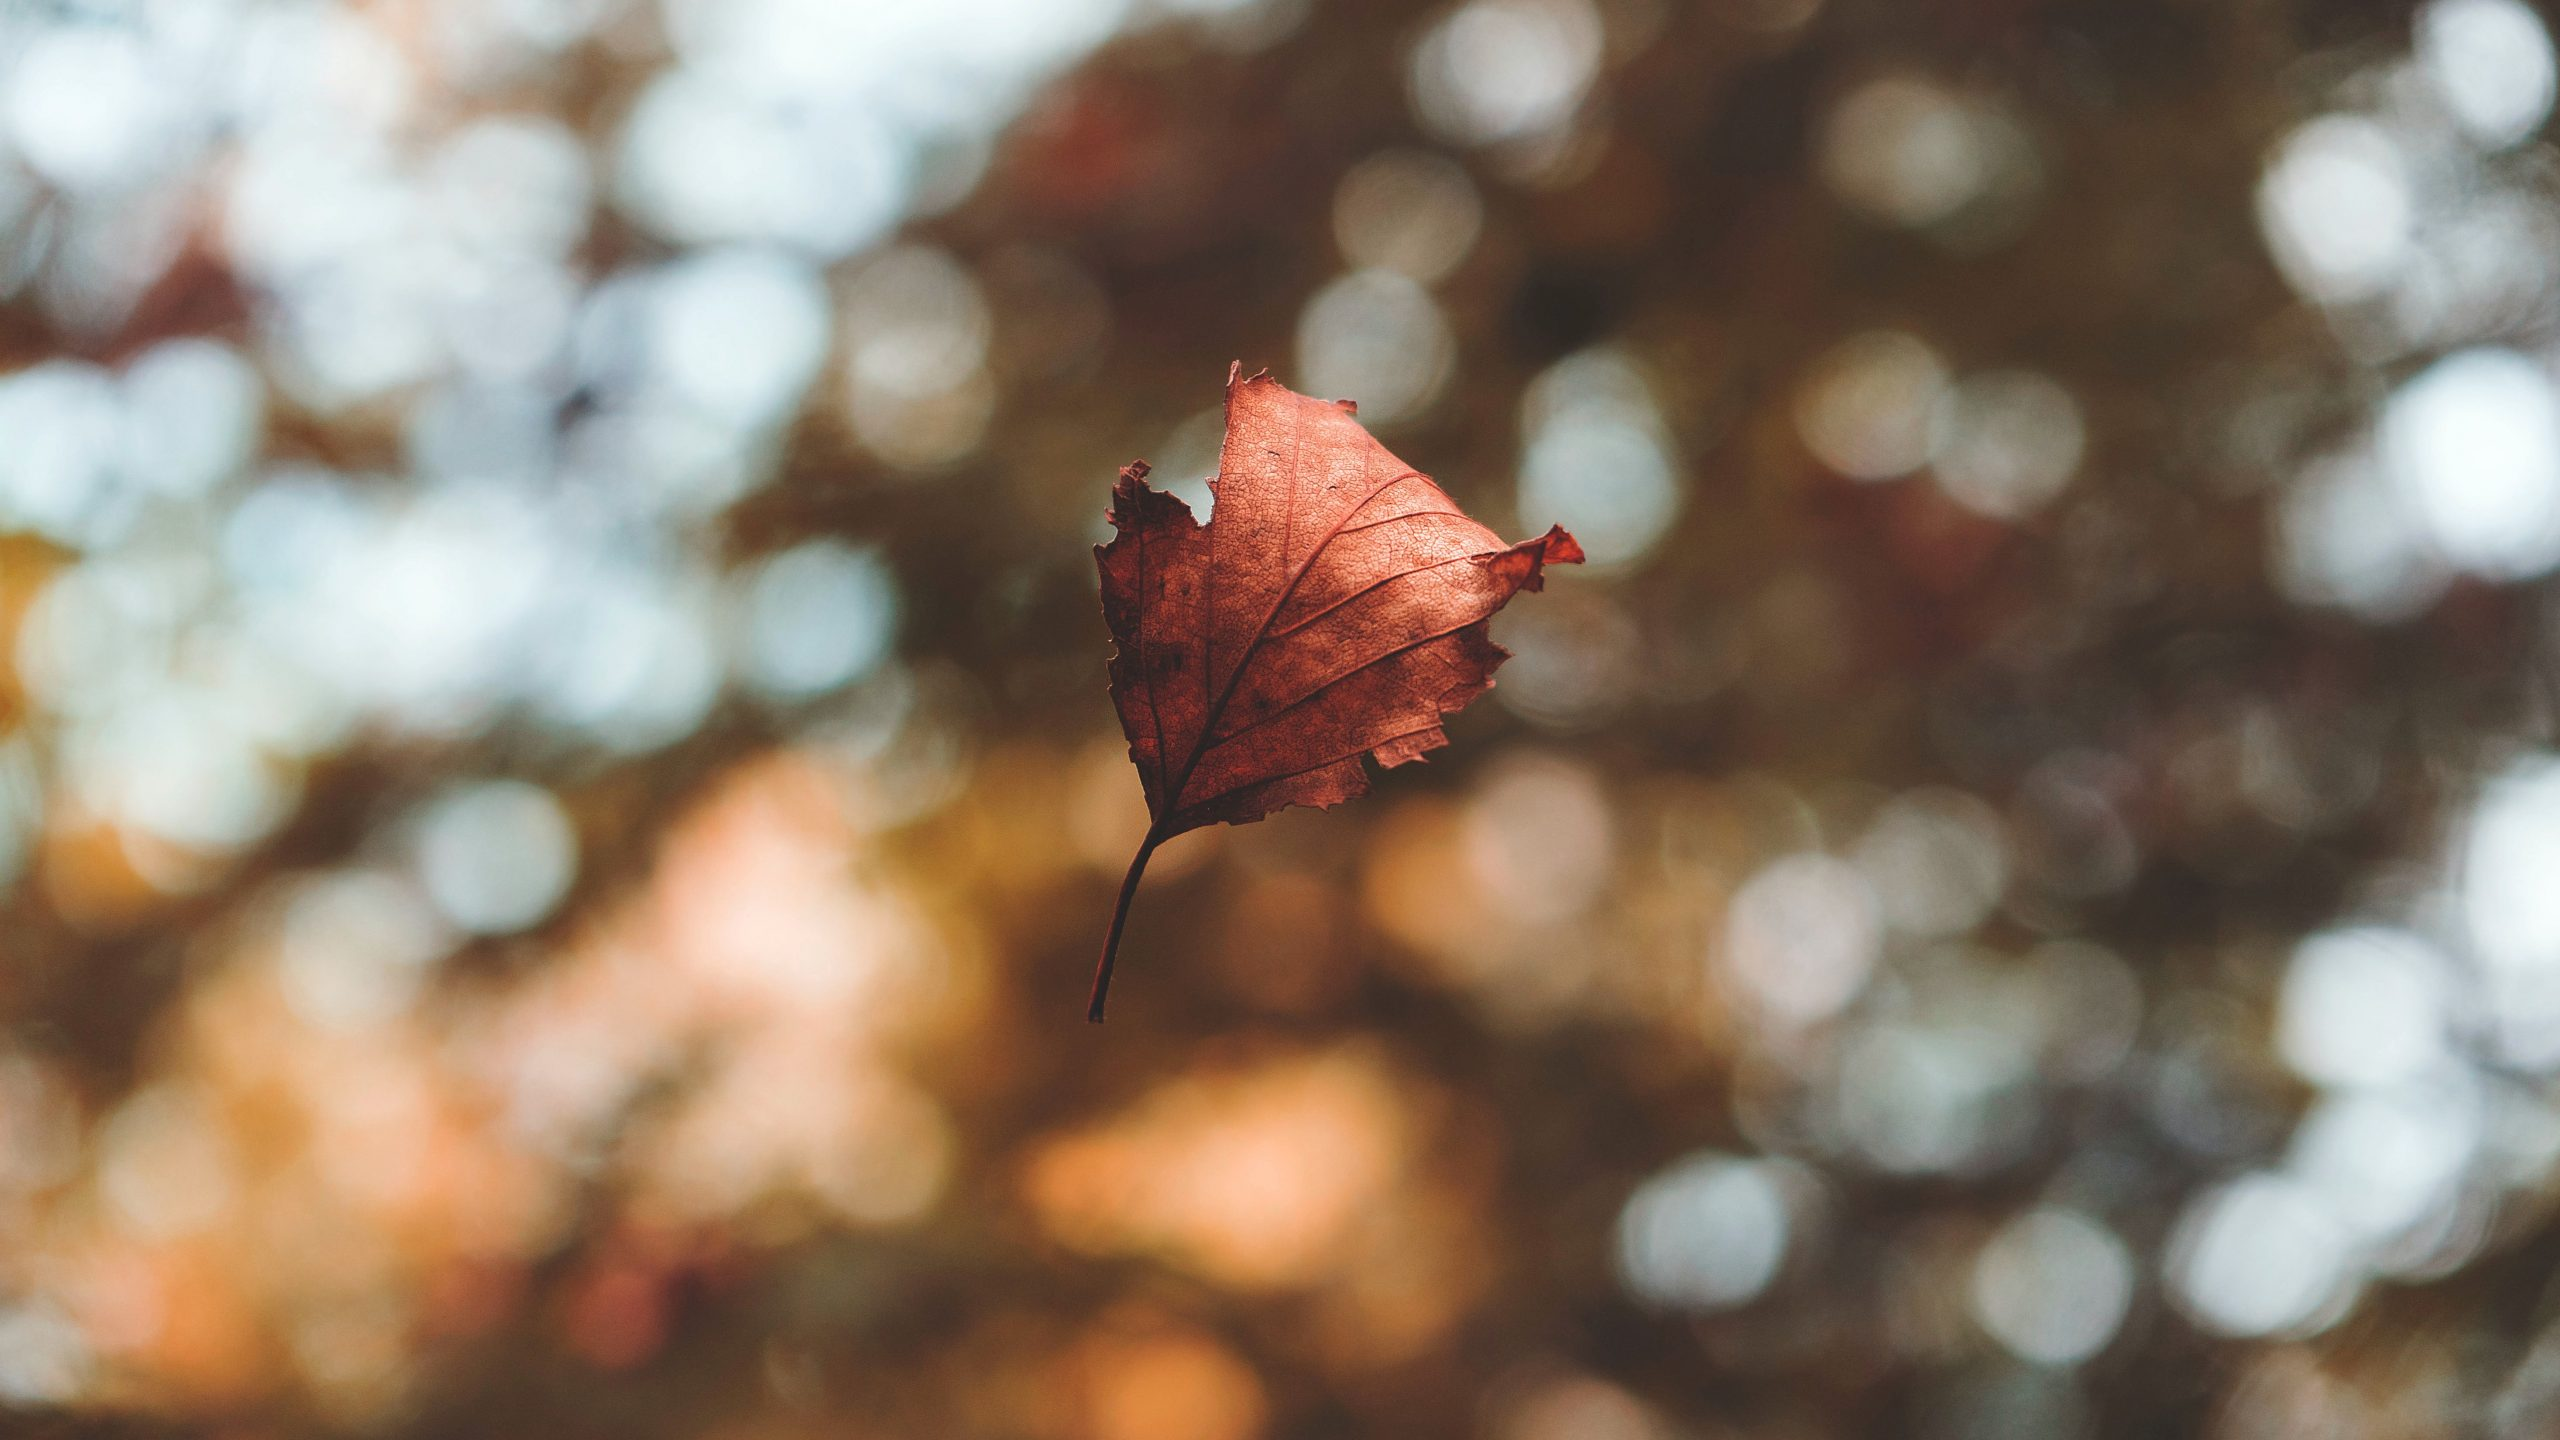 What fall teaches us about letting go